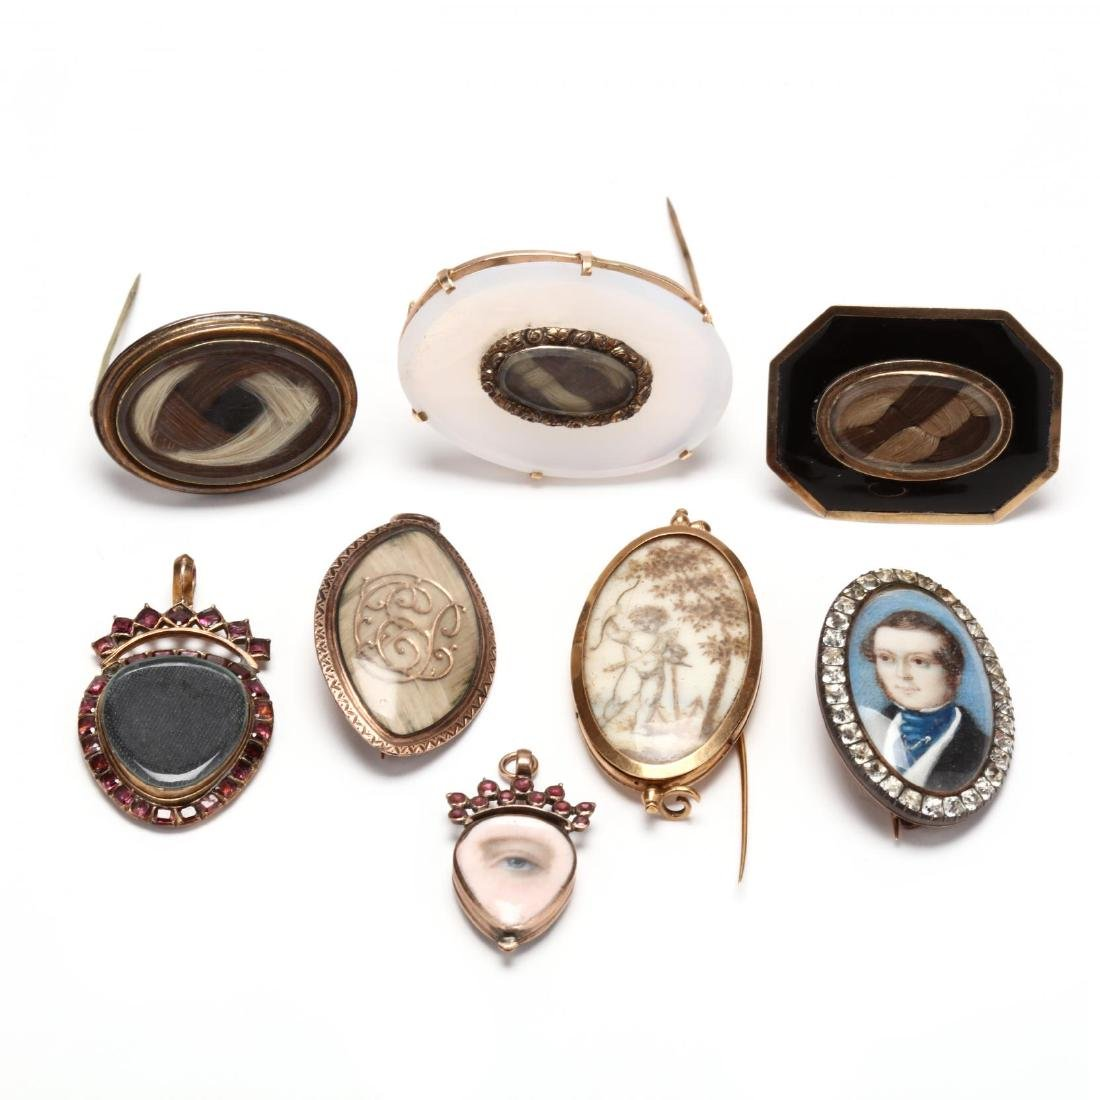 Collection of Eight Antique Mourning Jewelry Items